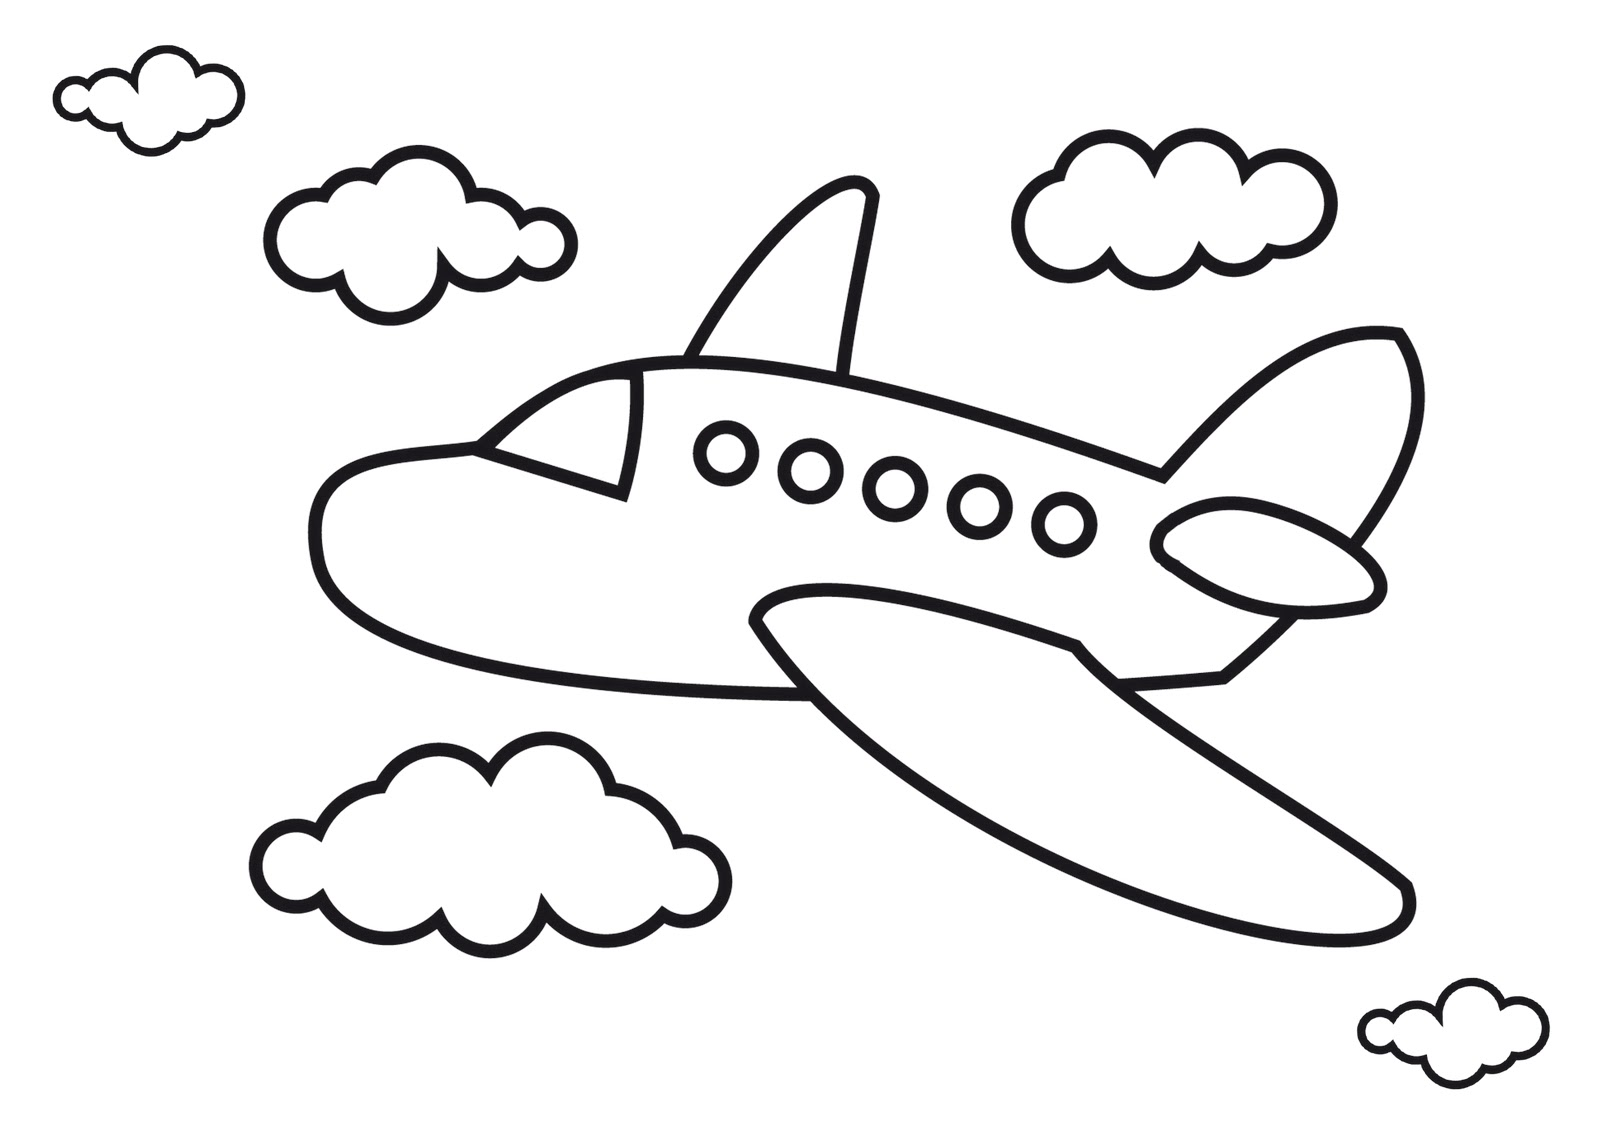 Sketch clipart areoplane Clip Airplane Download Drawing on